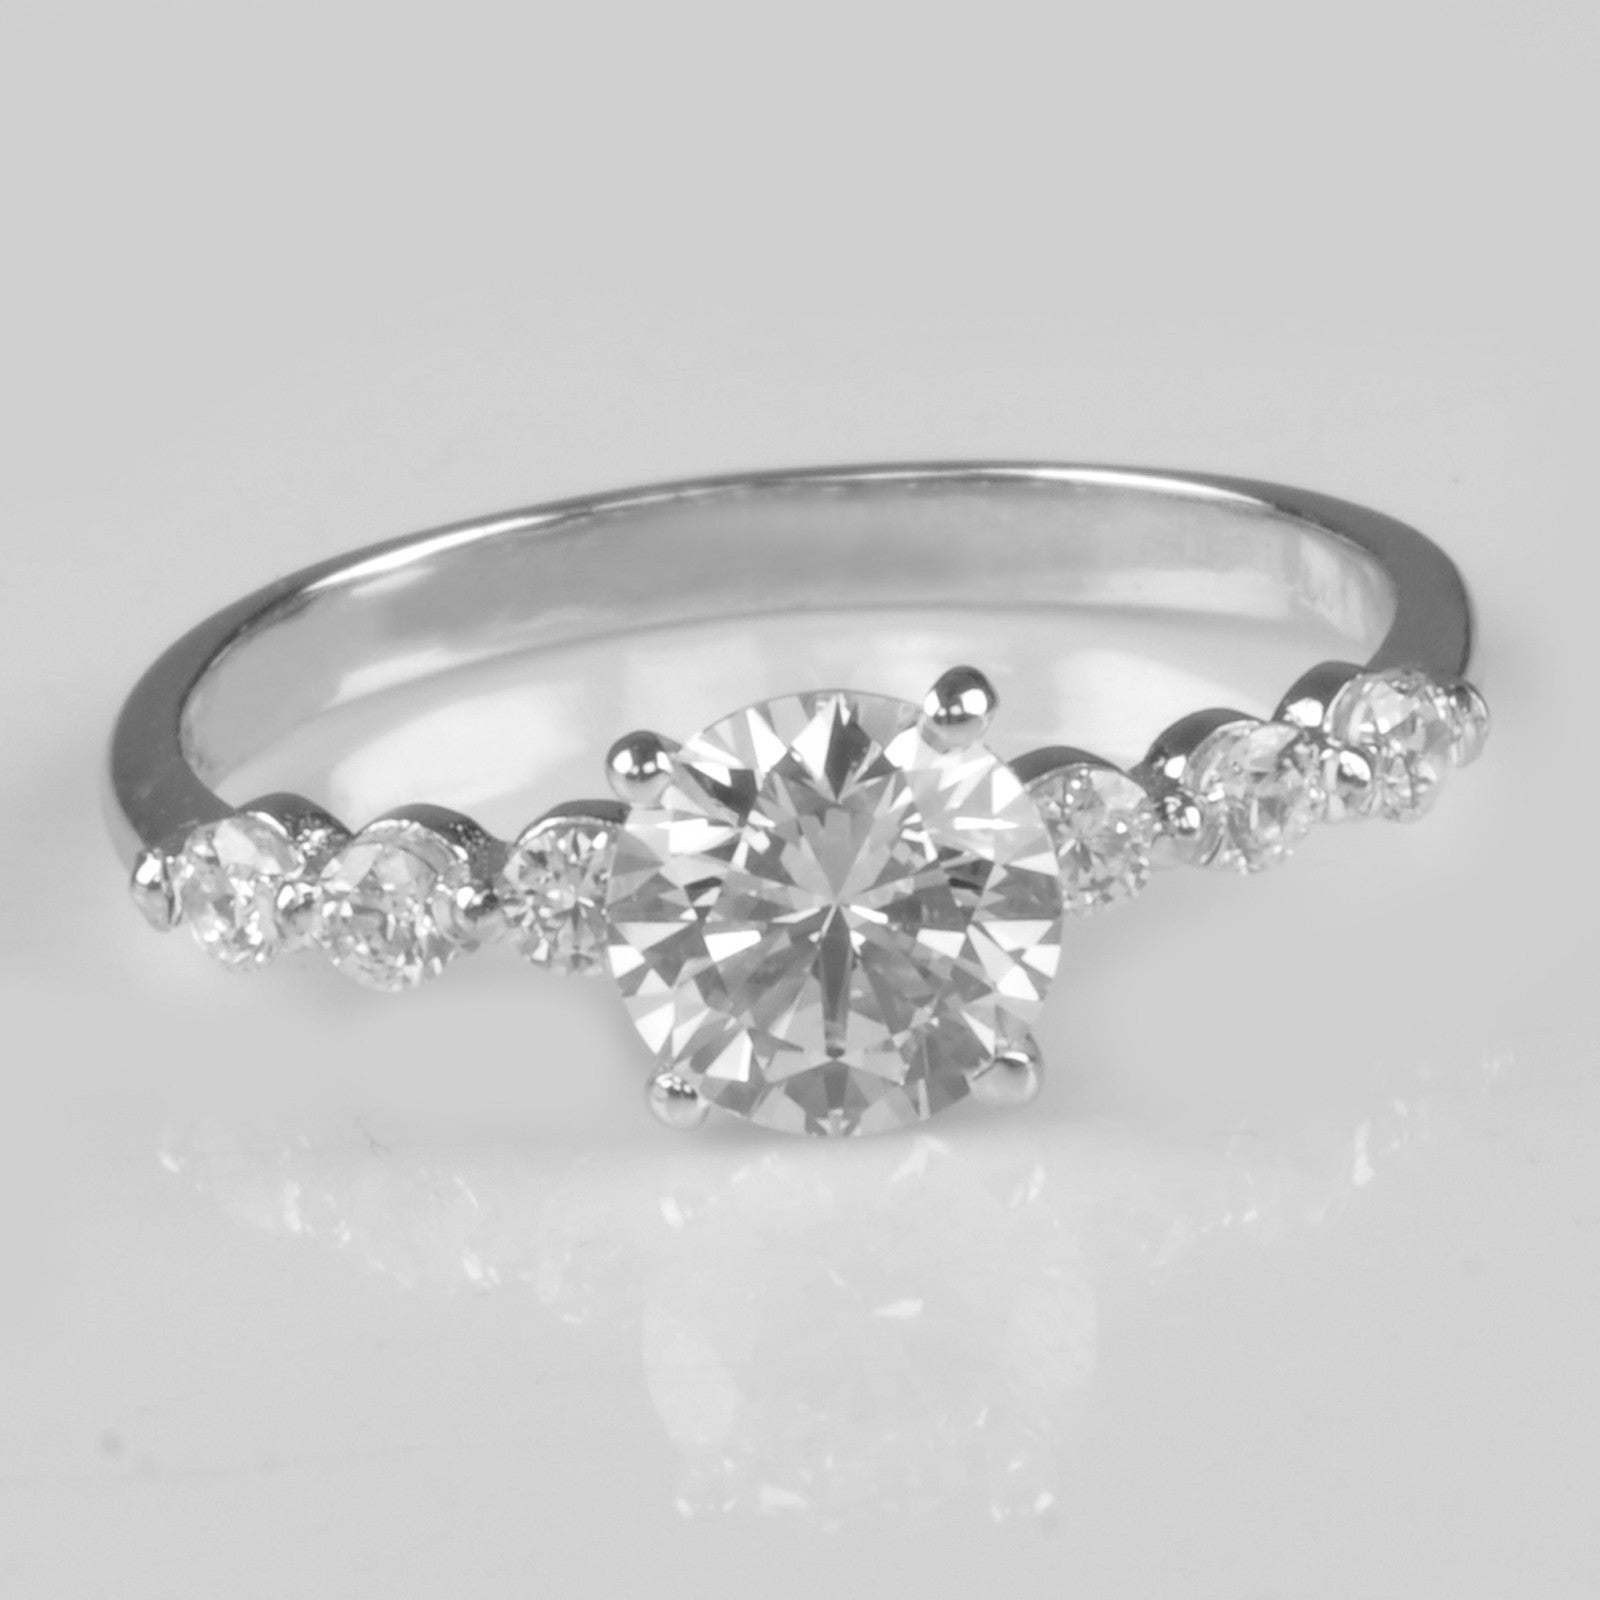 14KT SOLID GOLD 2.60 CARATS SOLITAIRE EXCELLENT ROUND SHAPE WEDDING RING